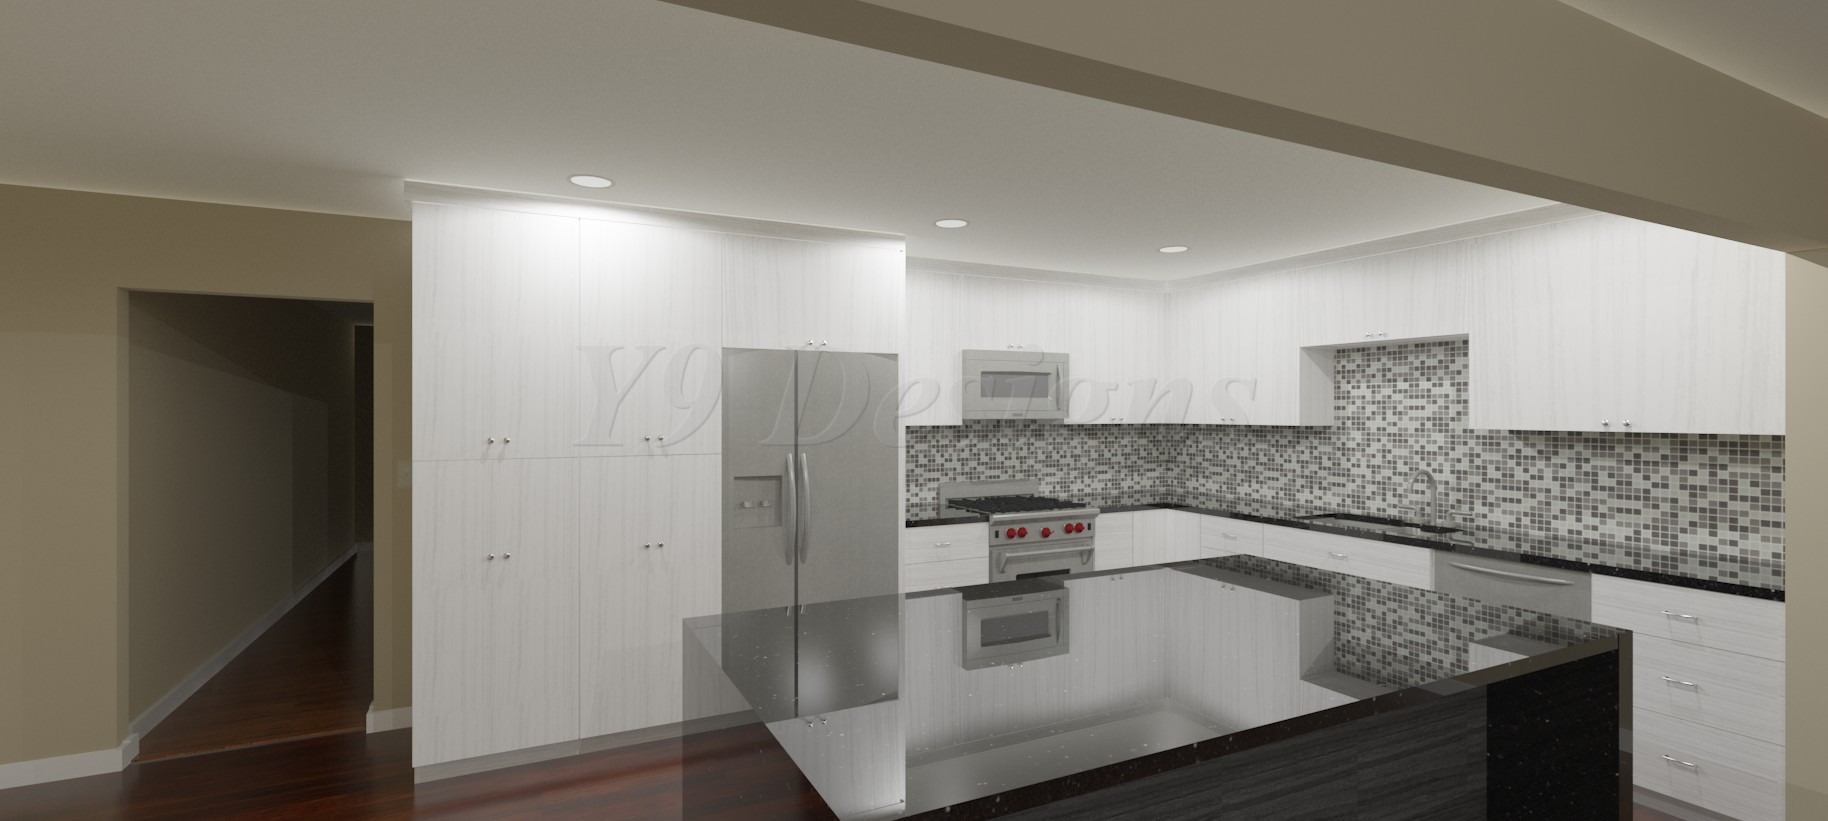 Commercial Kitchen 3d Design Y9 Construction Inc 3d Design